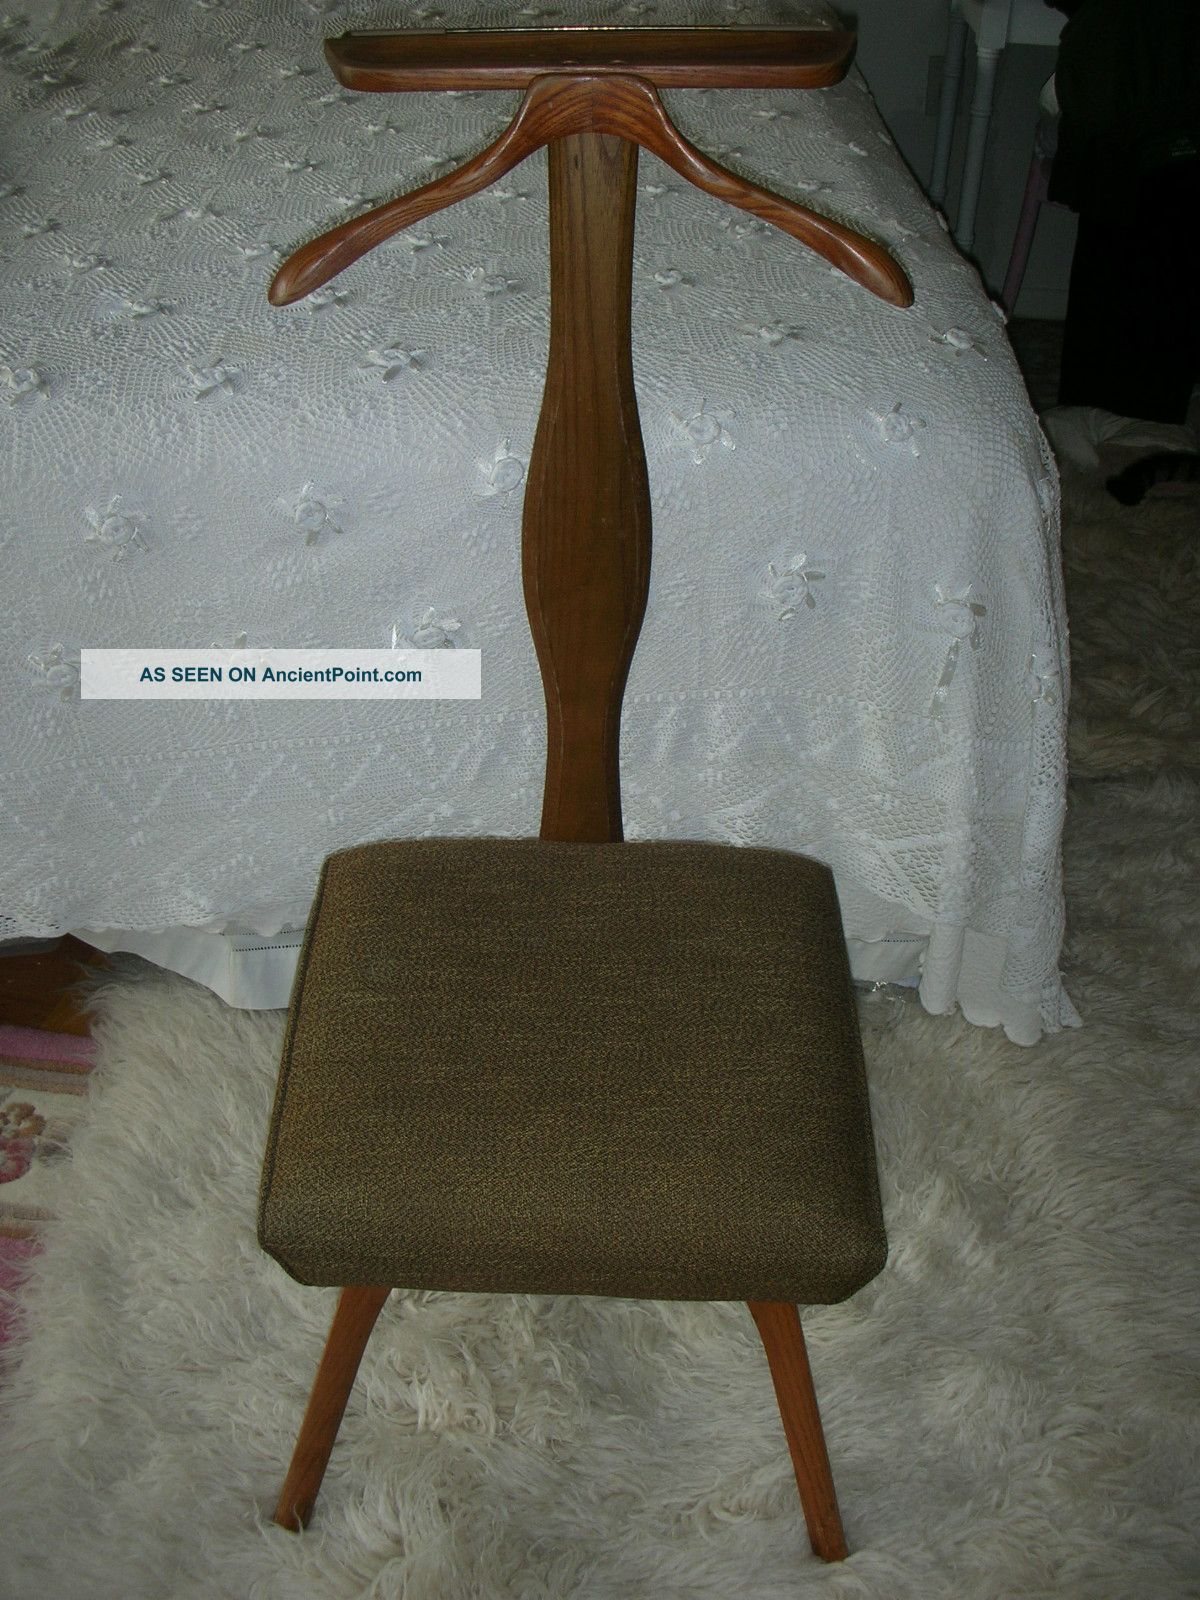 Vintage 1965 Setwell Chair, Post-1950 photo